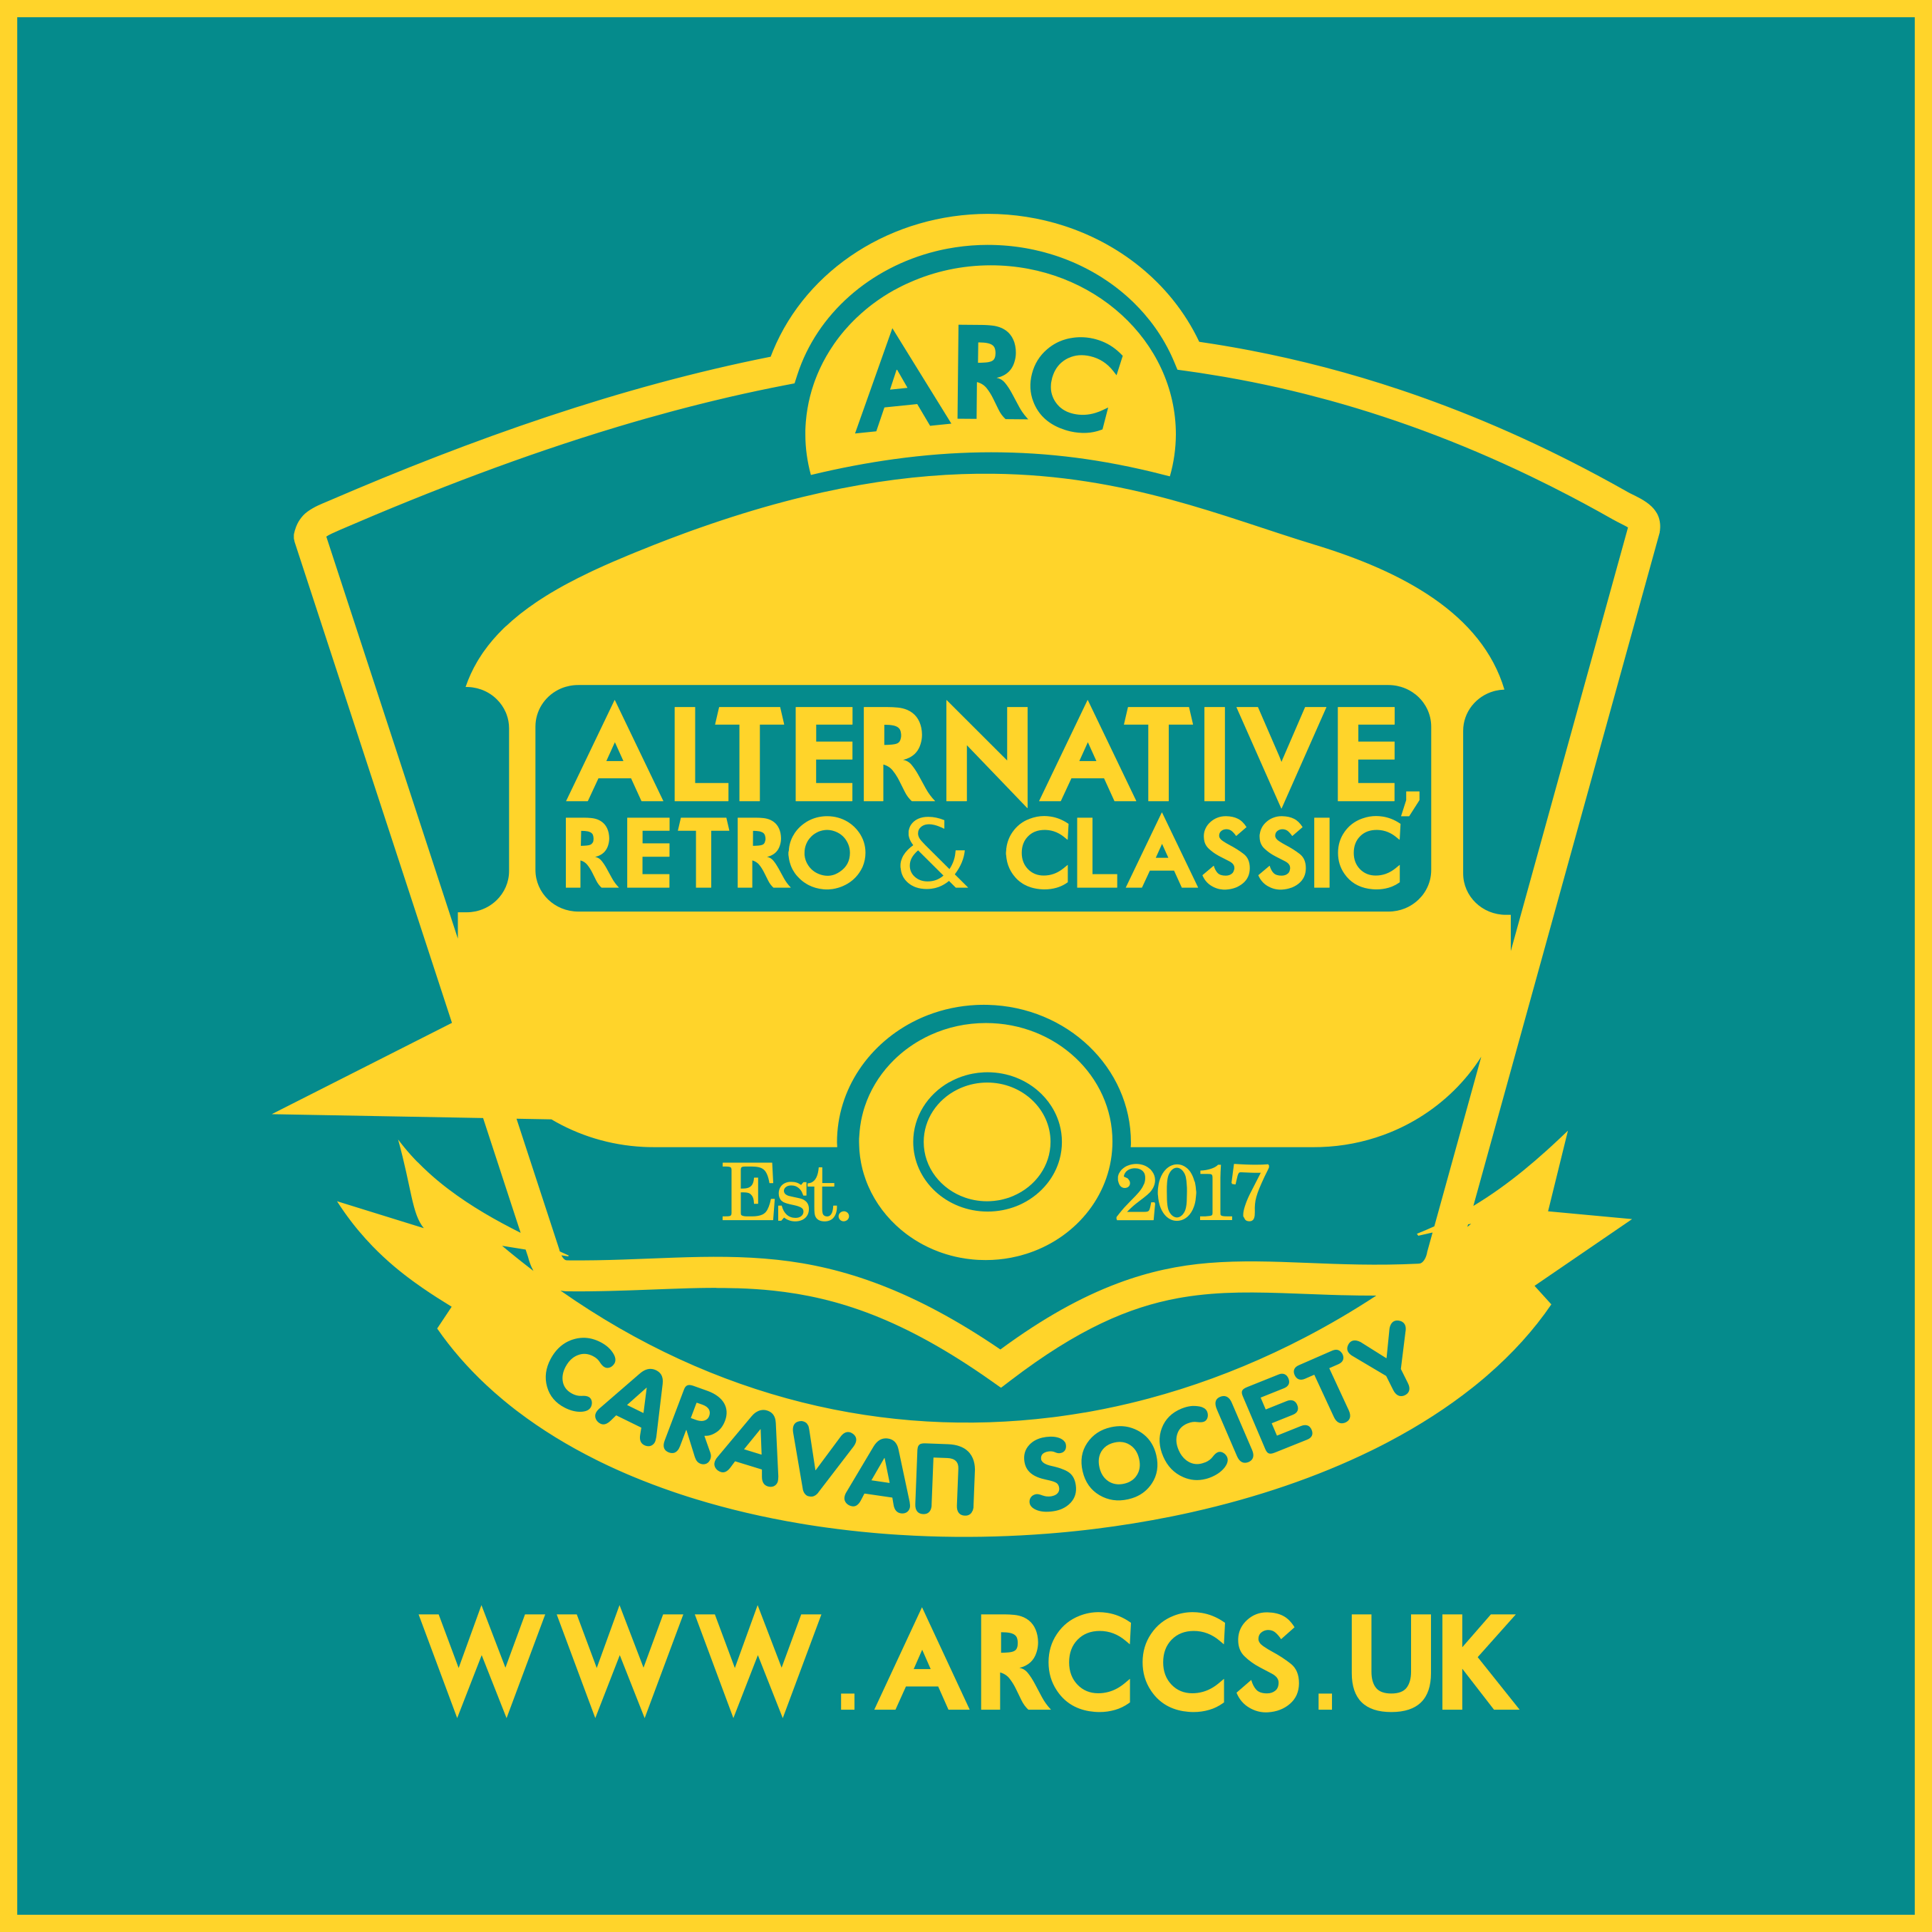 Alternative, Retro & Classic Caravan Society